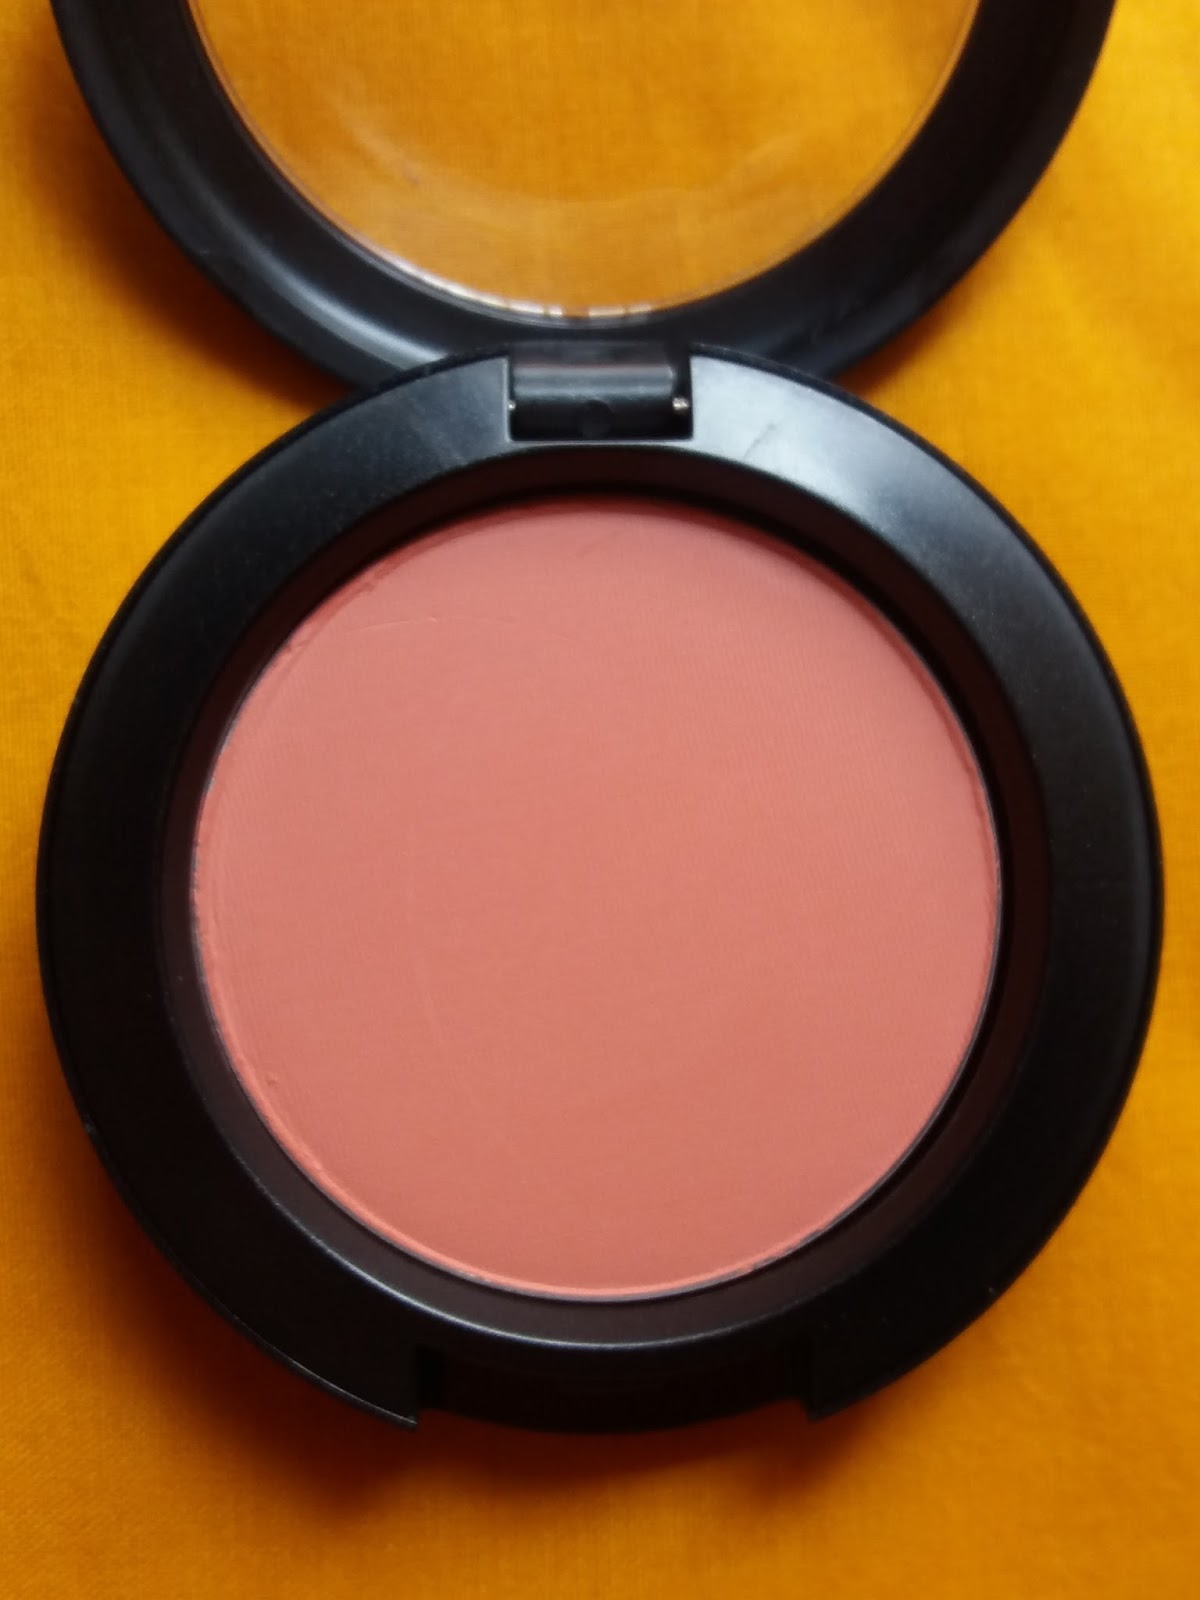 Top MAC Peaches Sheertone Blush Review & Swatches - My Face Hunter MH56